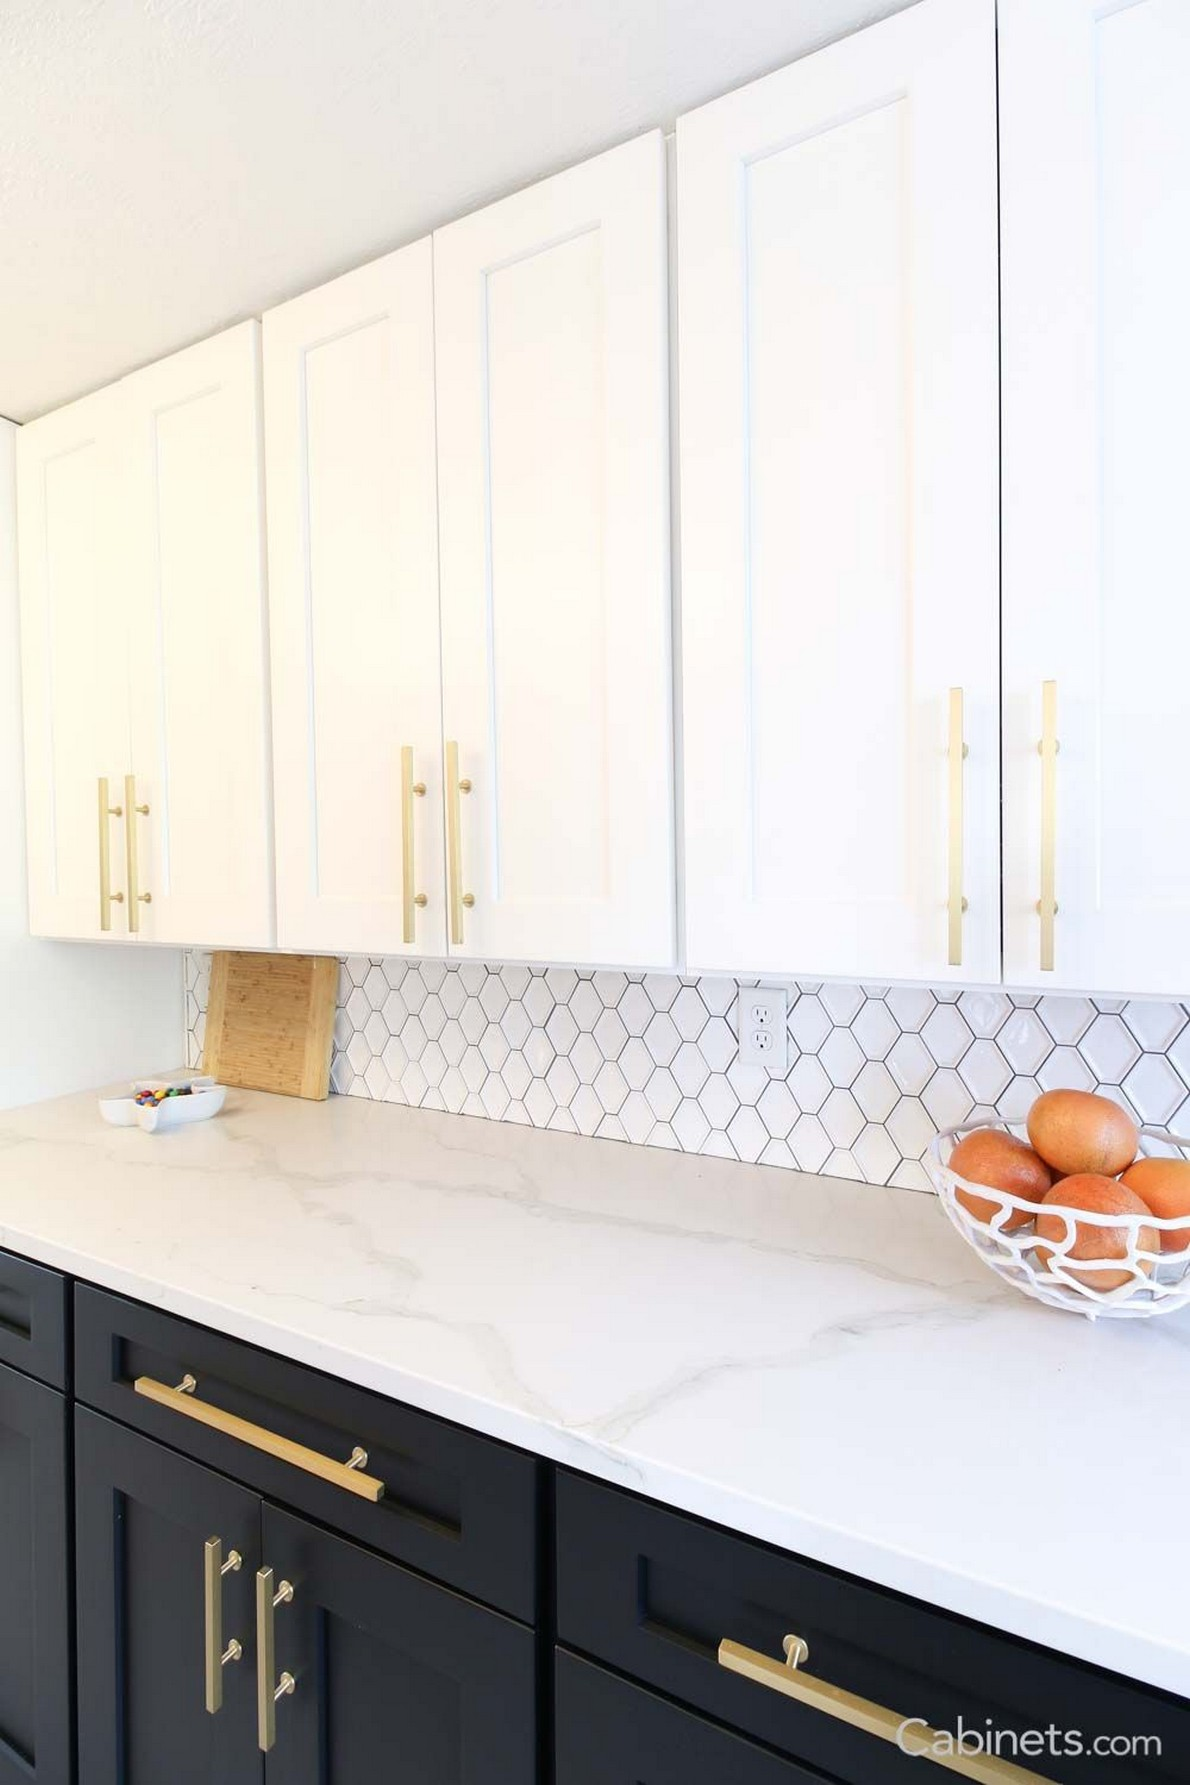 71 Painted Kitchen Cabinets Ideas For Home Decor 58